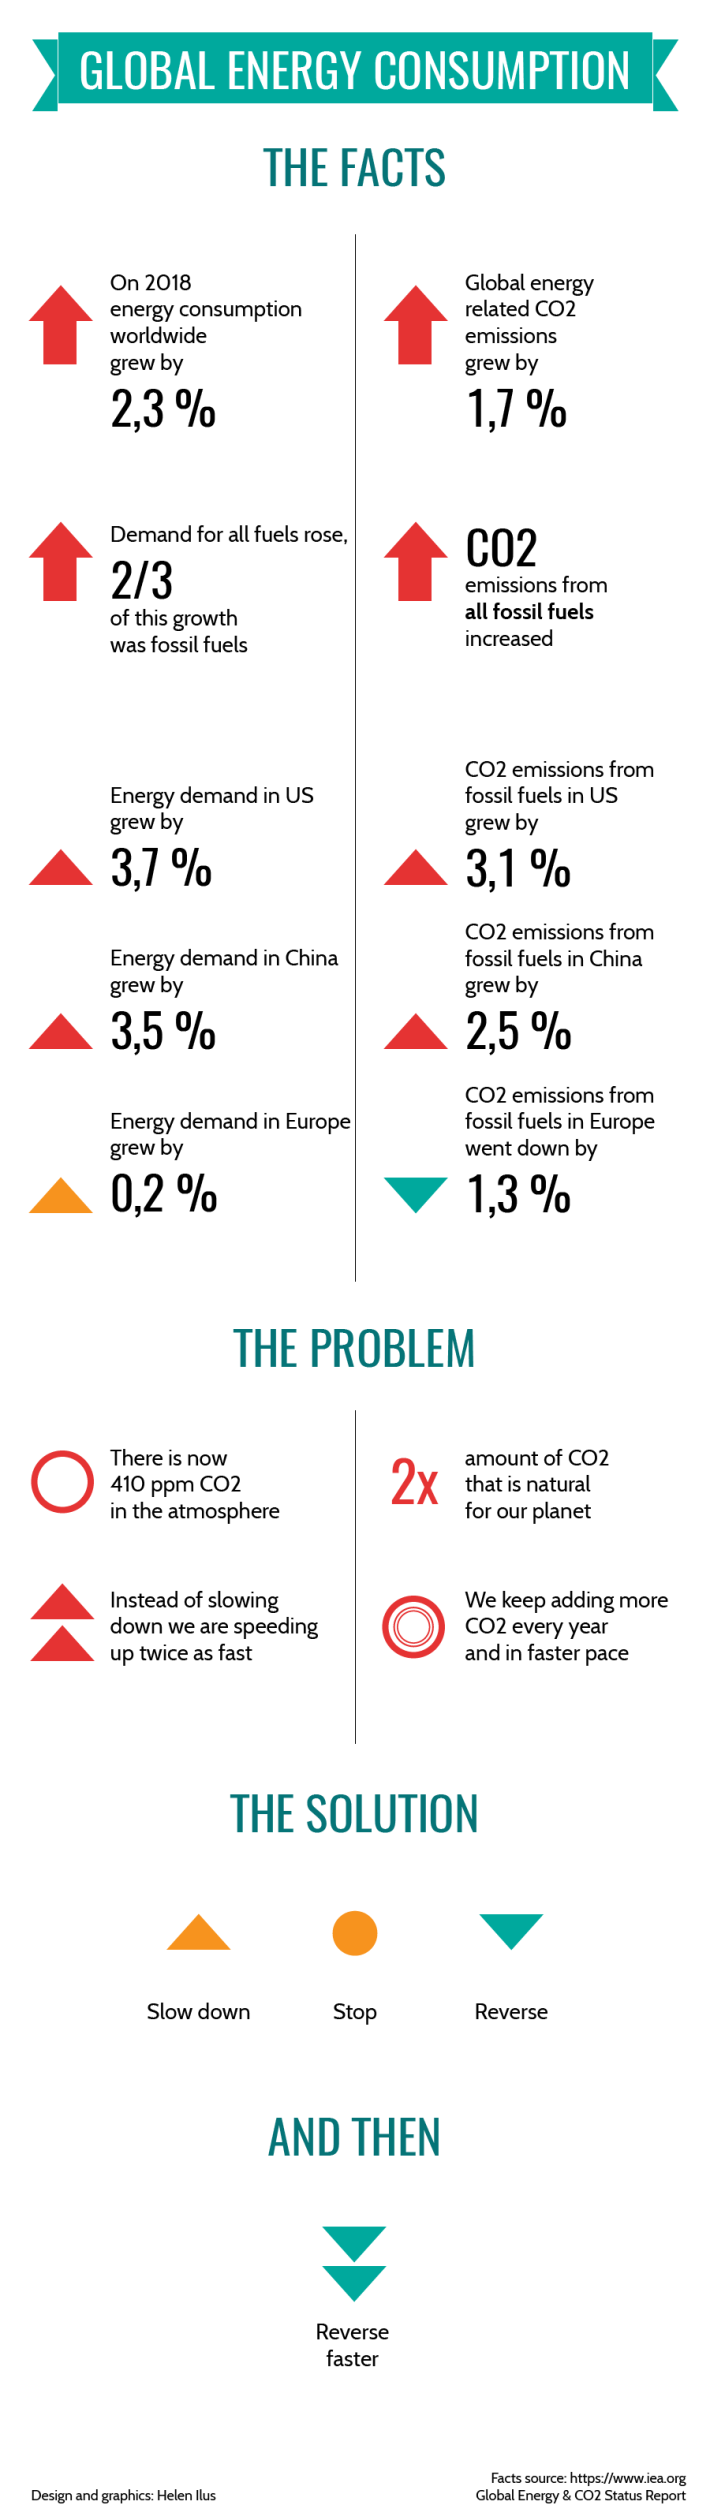 Global Energy Consumption Facts